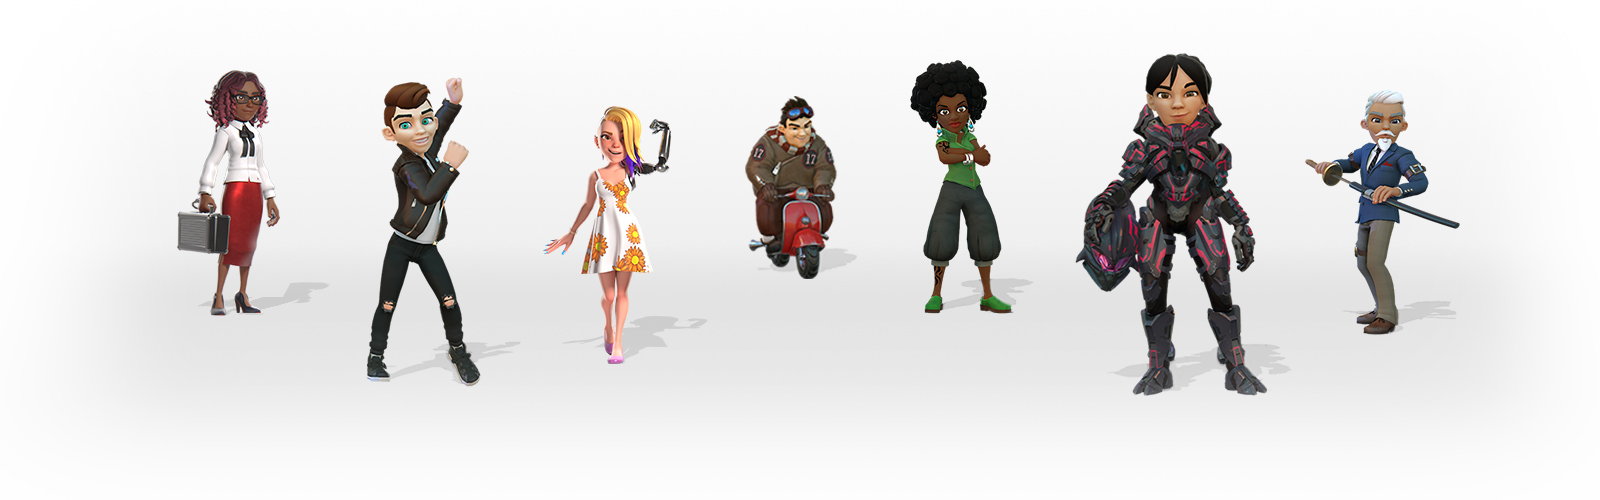 Front view of 7 Avatars wearing different outfits